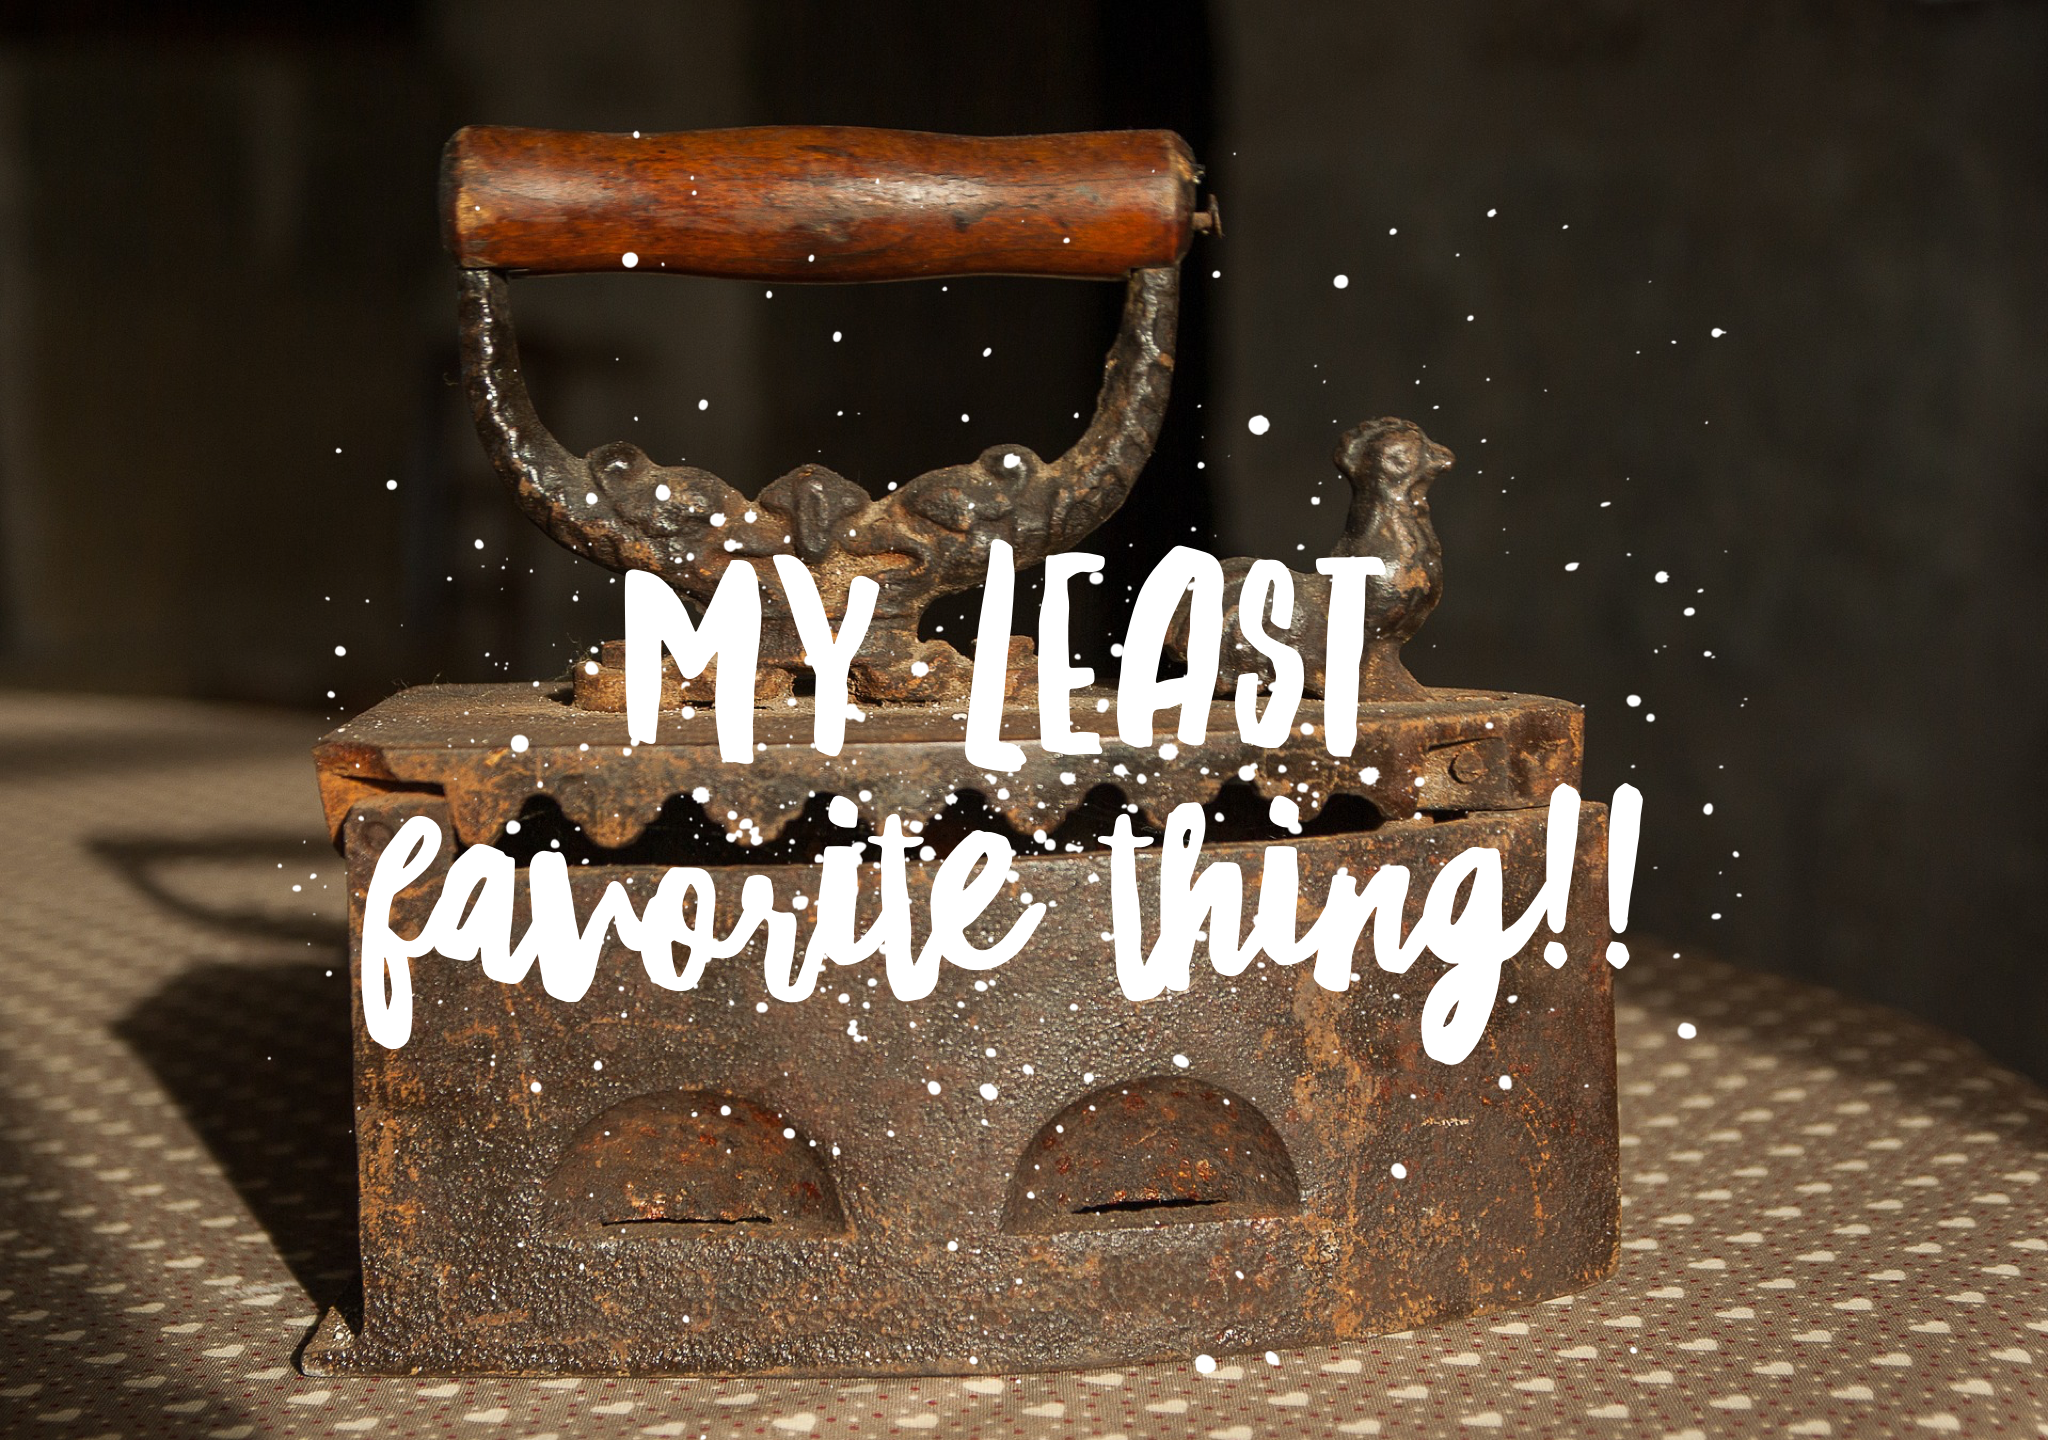 My LEAST Favorite Thing!